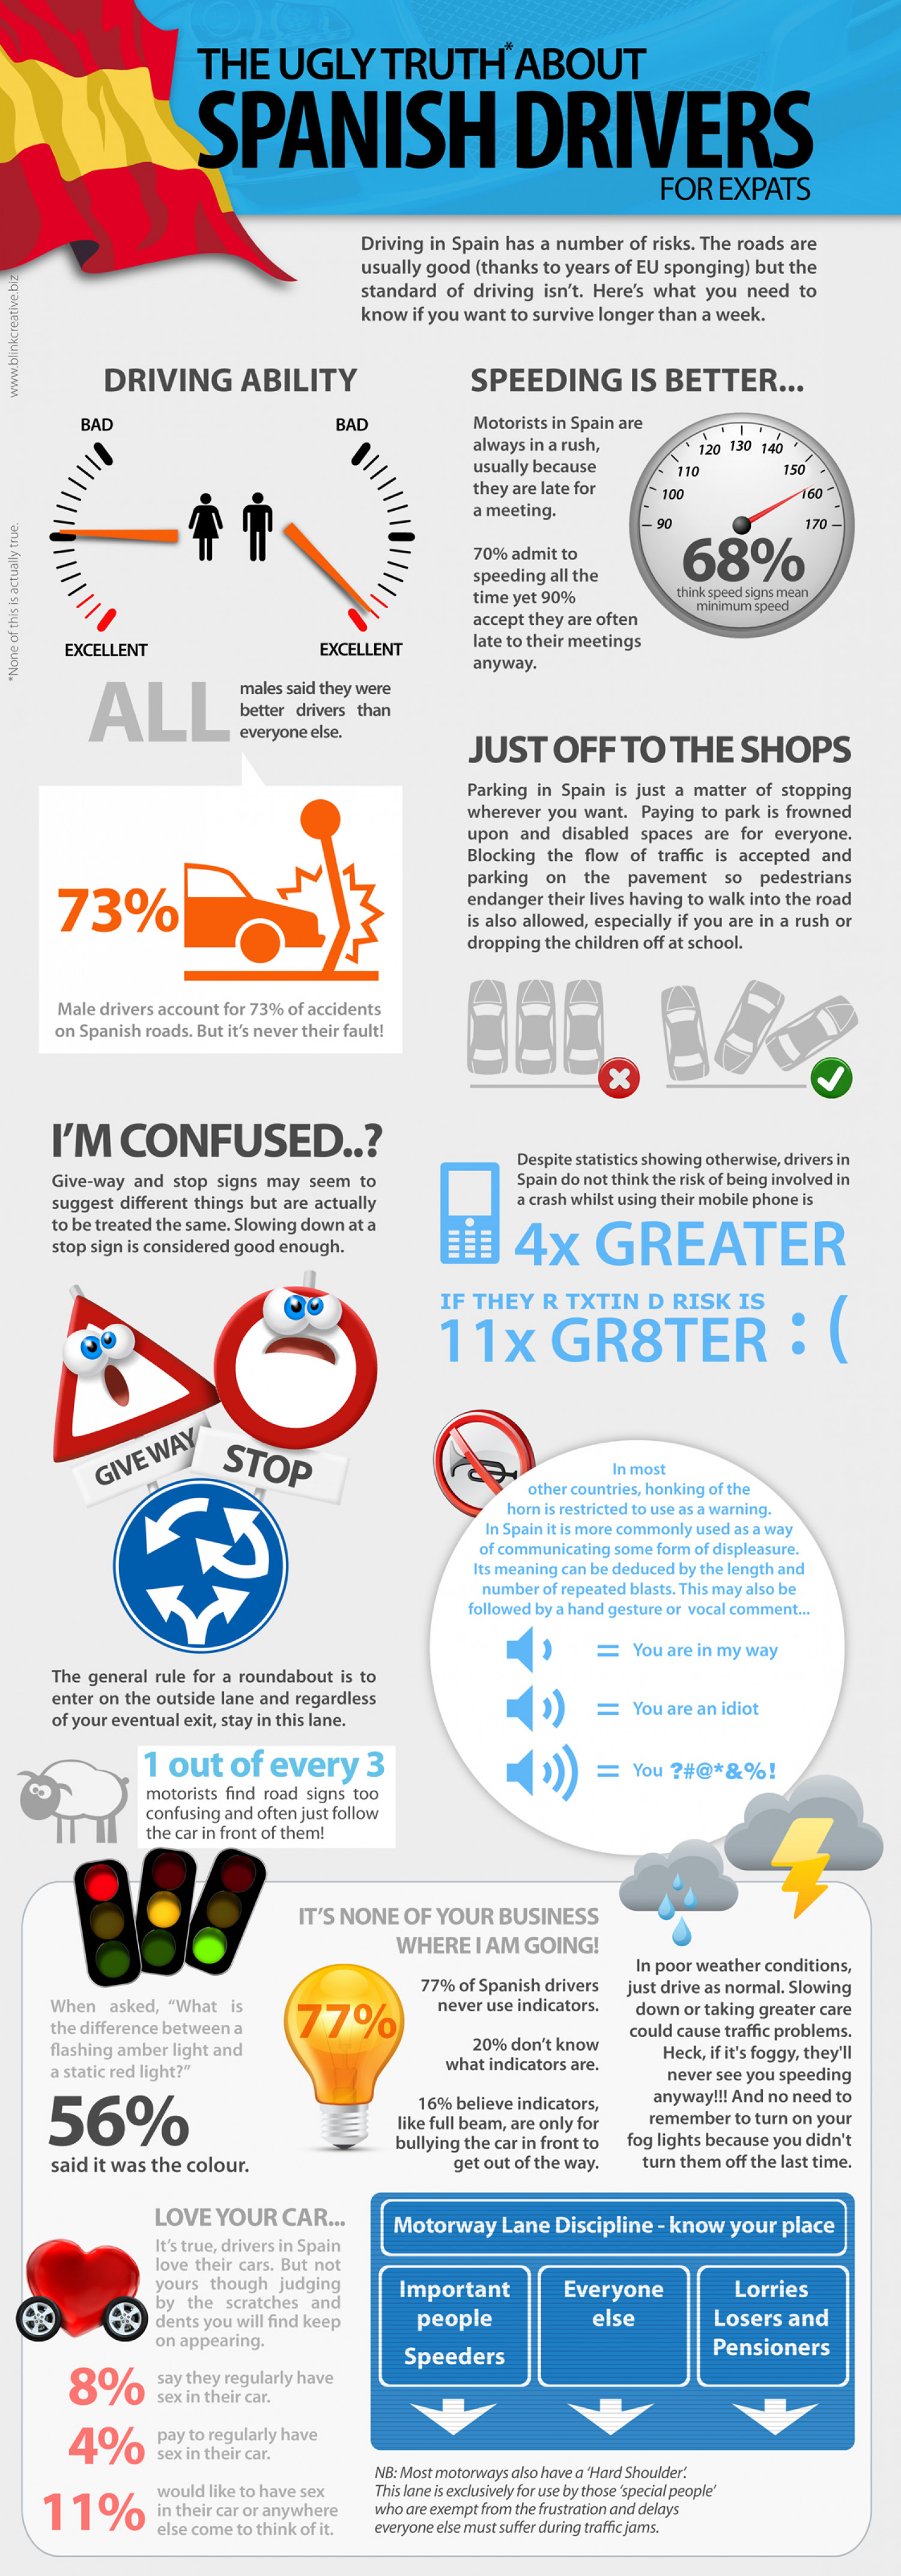 The ugly truth about Spanish drivers for Expats Infographic